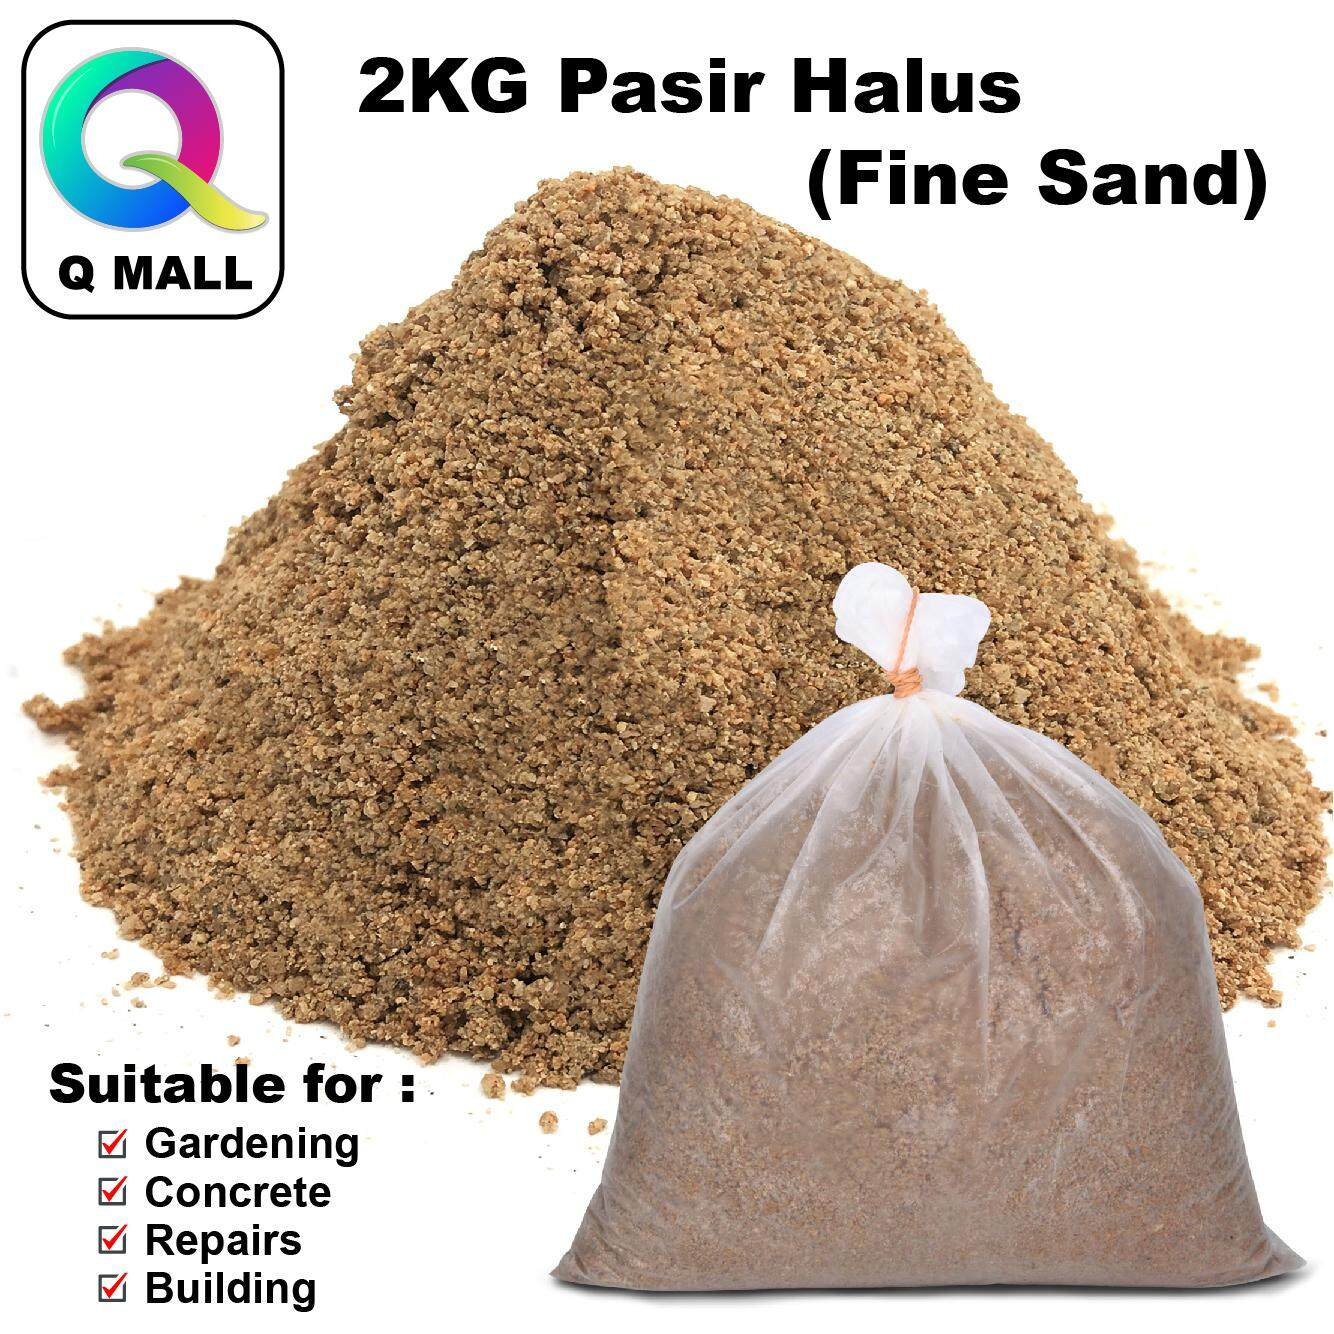 Q MALL 2KG Fine Sand / Pasir Halus / Pasir Simen /Cement Sand for Building Material, Touch Up DIY